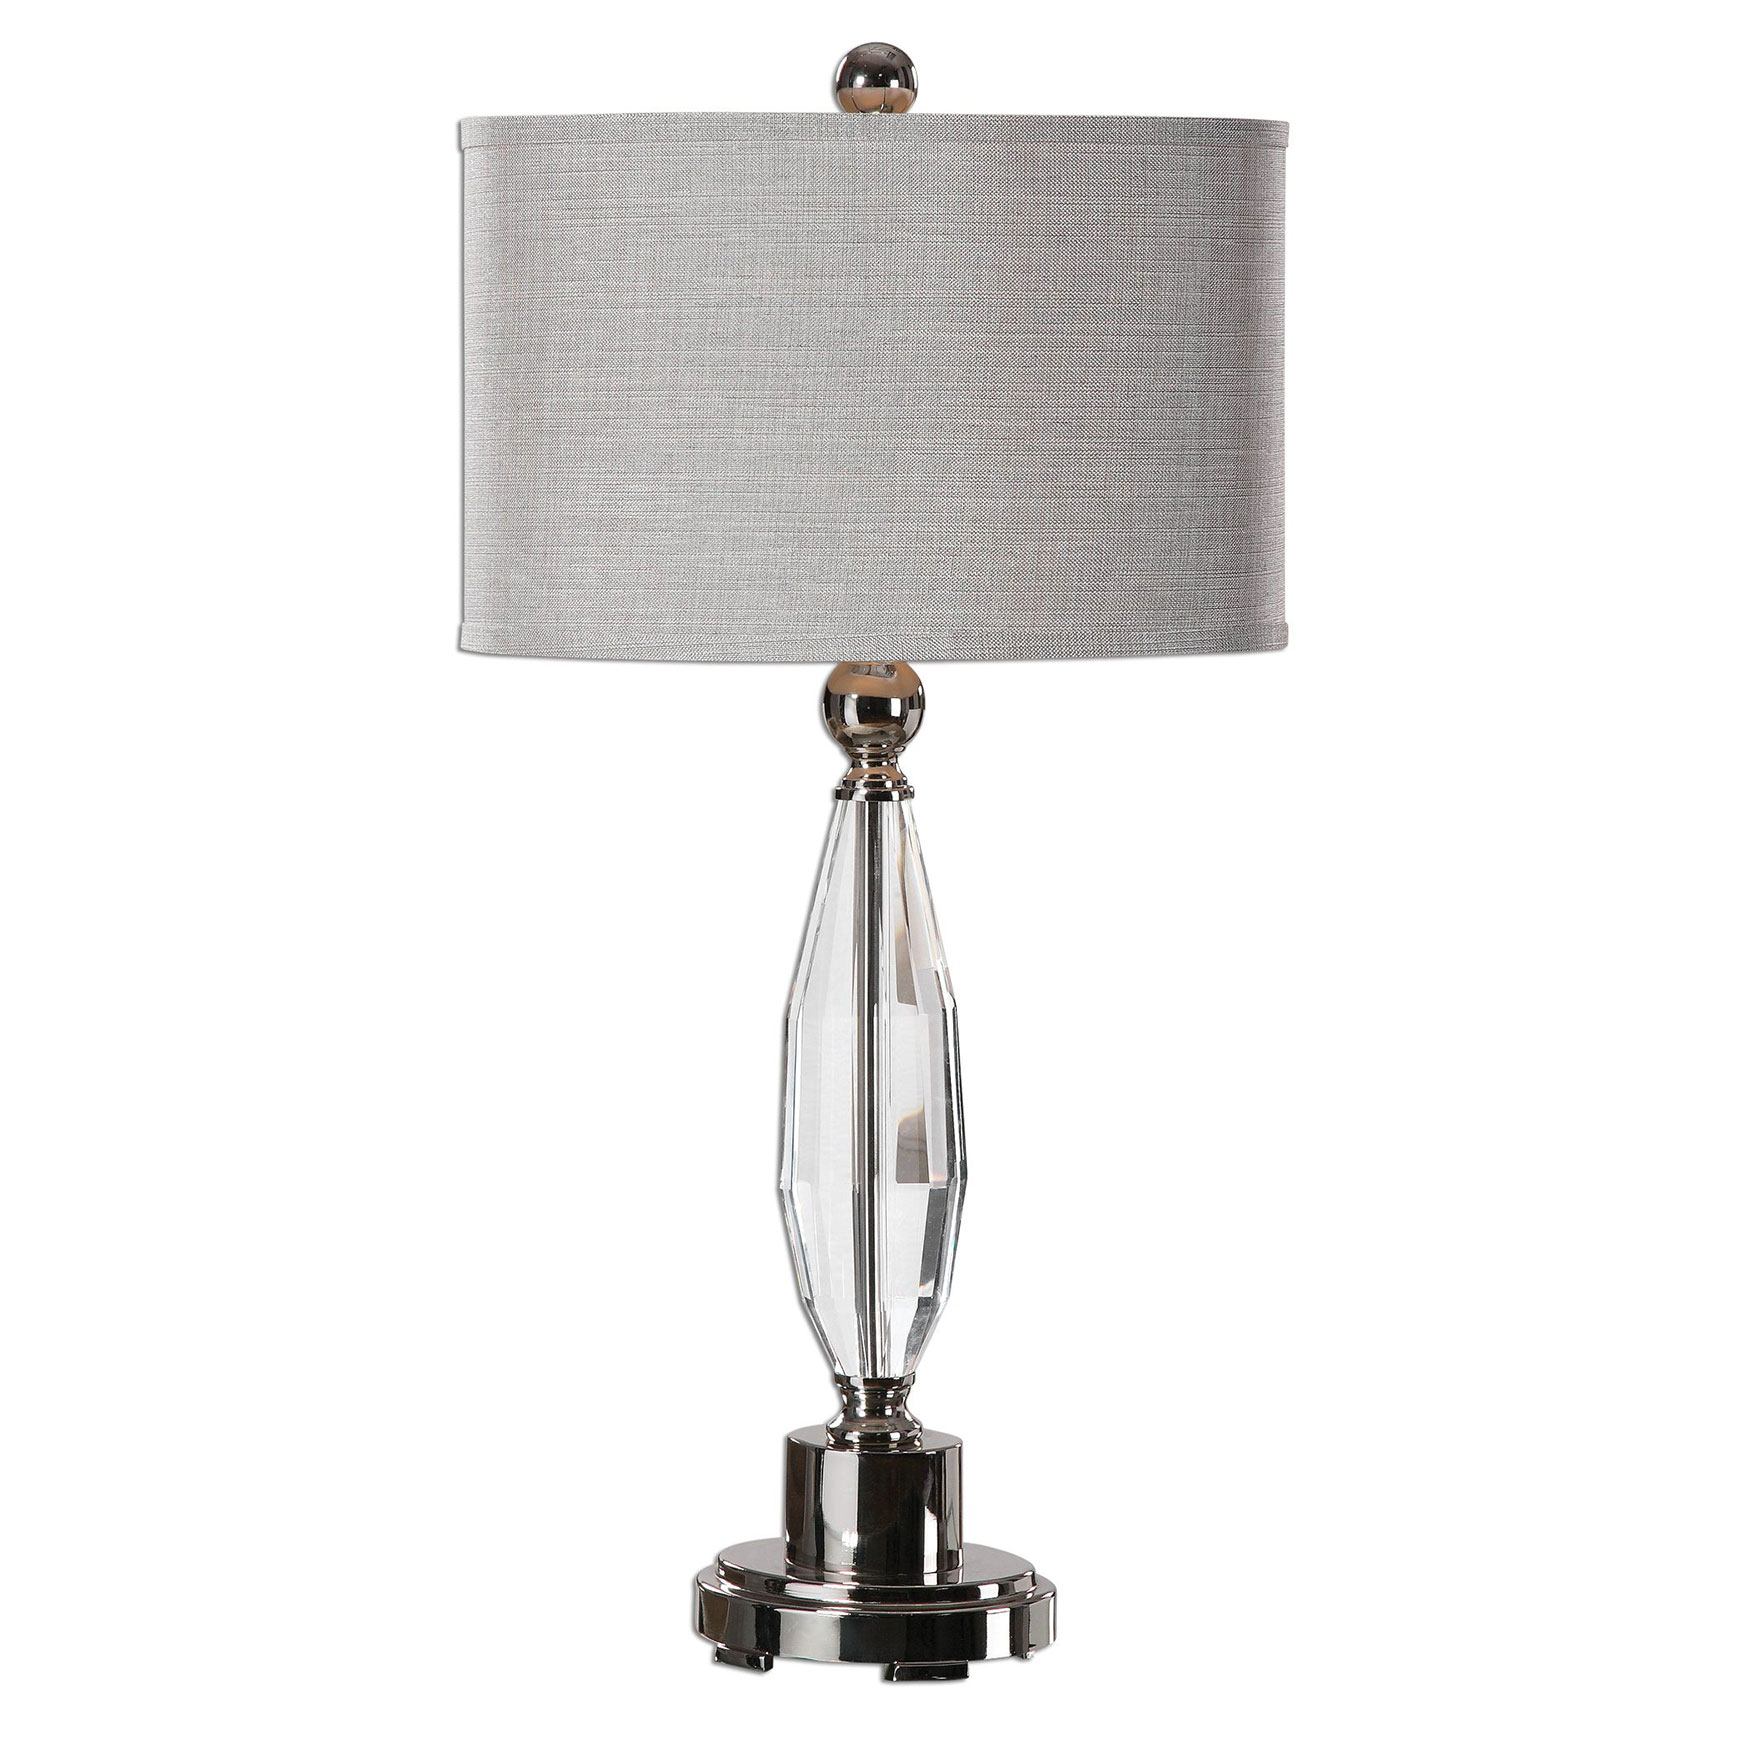 Torlino Cut Crystal Lamp, NICKEL